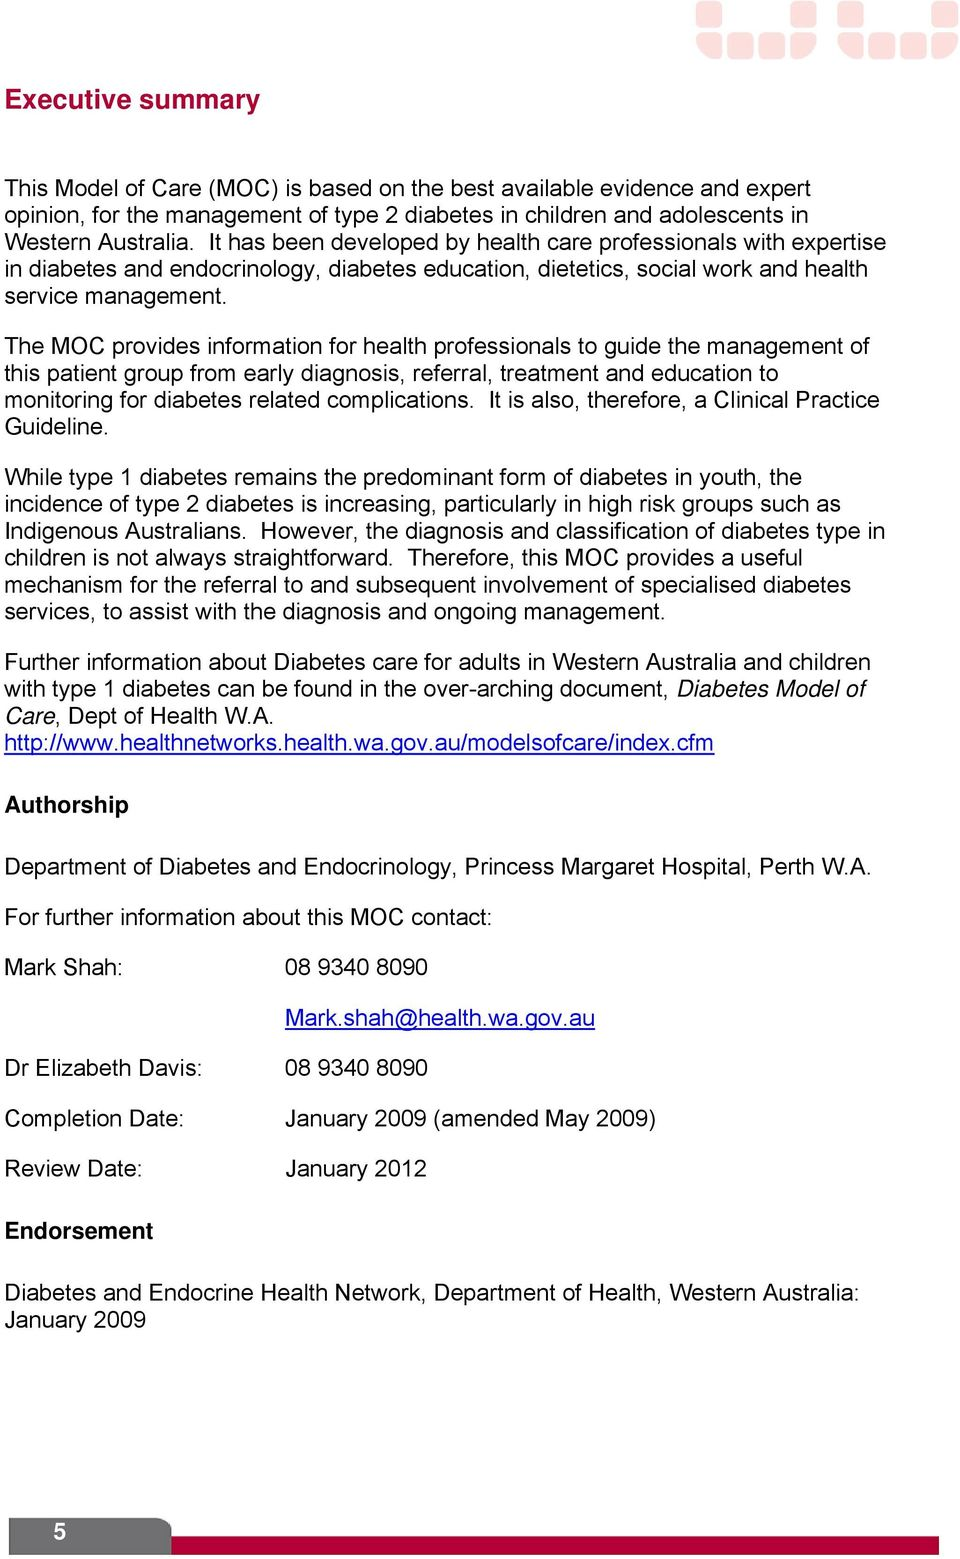 The MOC provides information for health professionals to guide the management of this patient group from early diagnosis, referral, treatment and education to monitoring for diabetes related